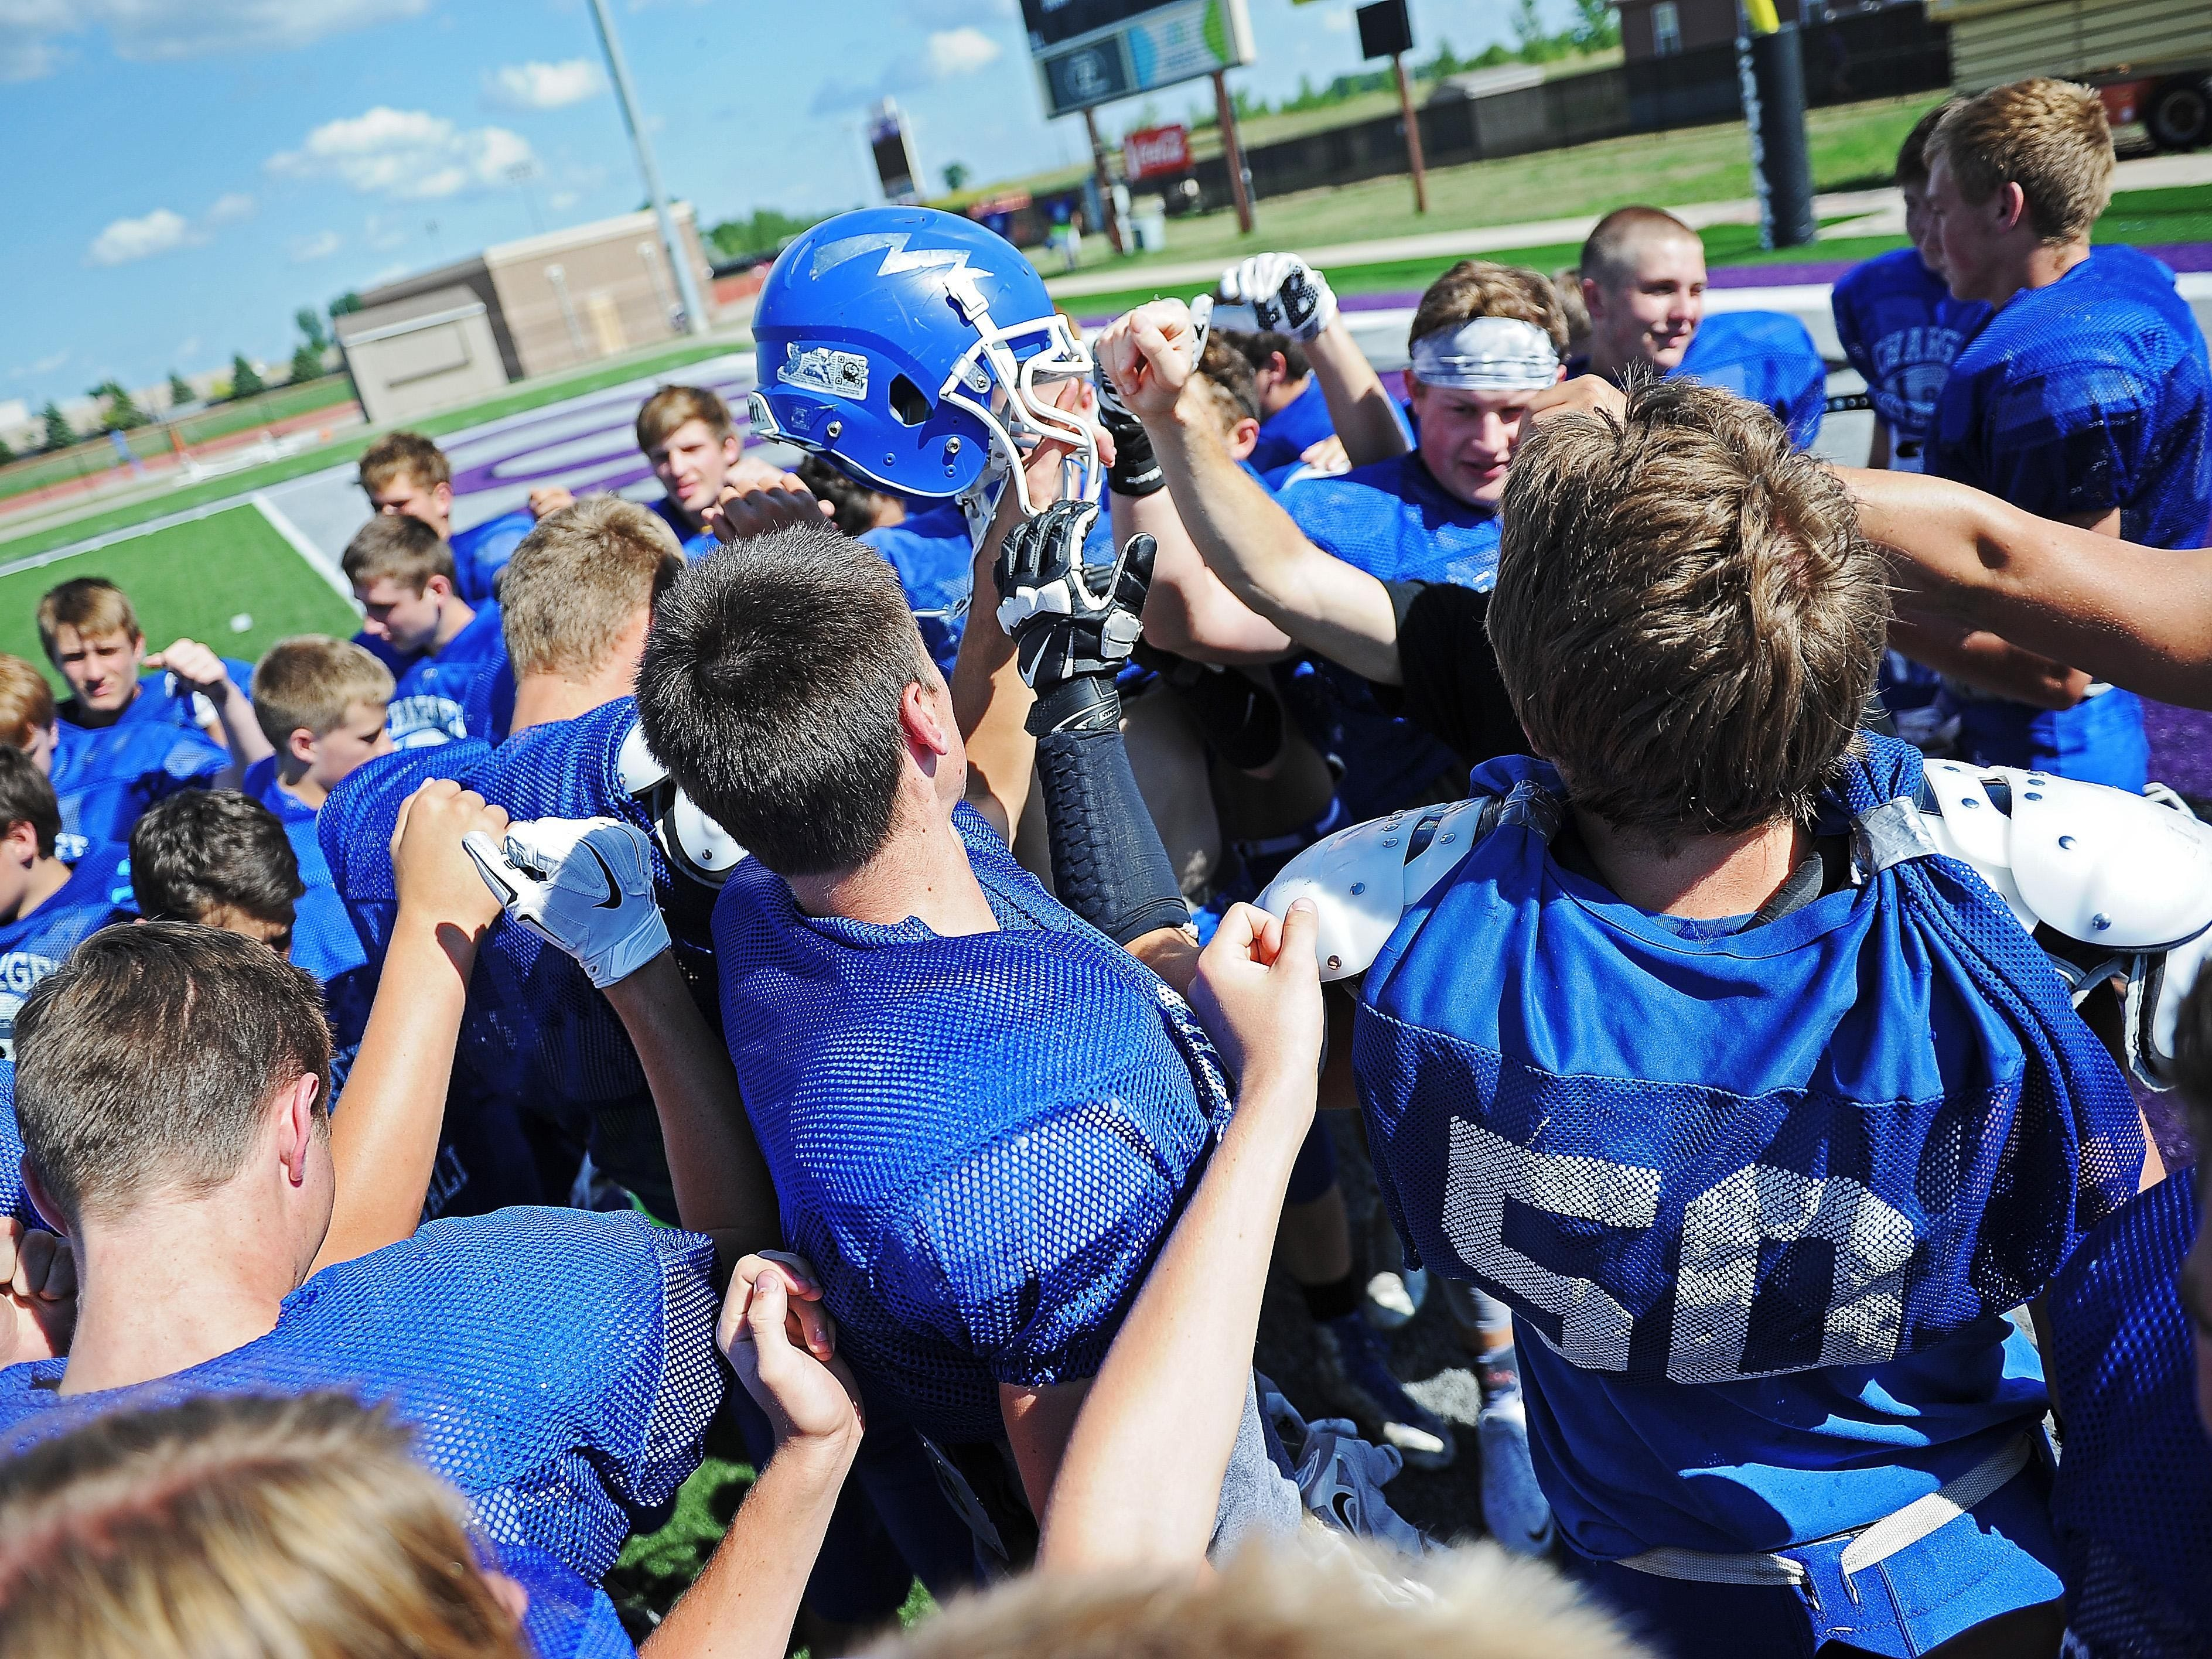 Sioux Fall Christian football players huddle during a practice Tuesday, Aug. 16, 2016, at University of Sioux Falls' Bob Young Field in Sioux Falls.